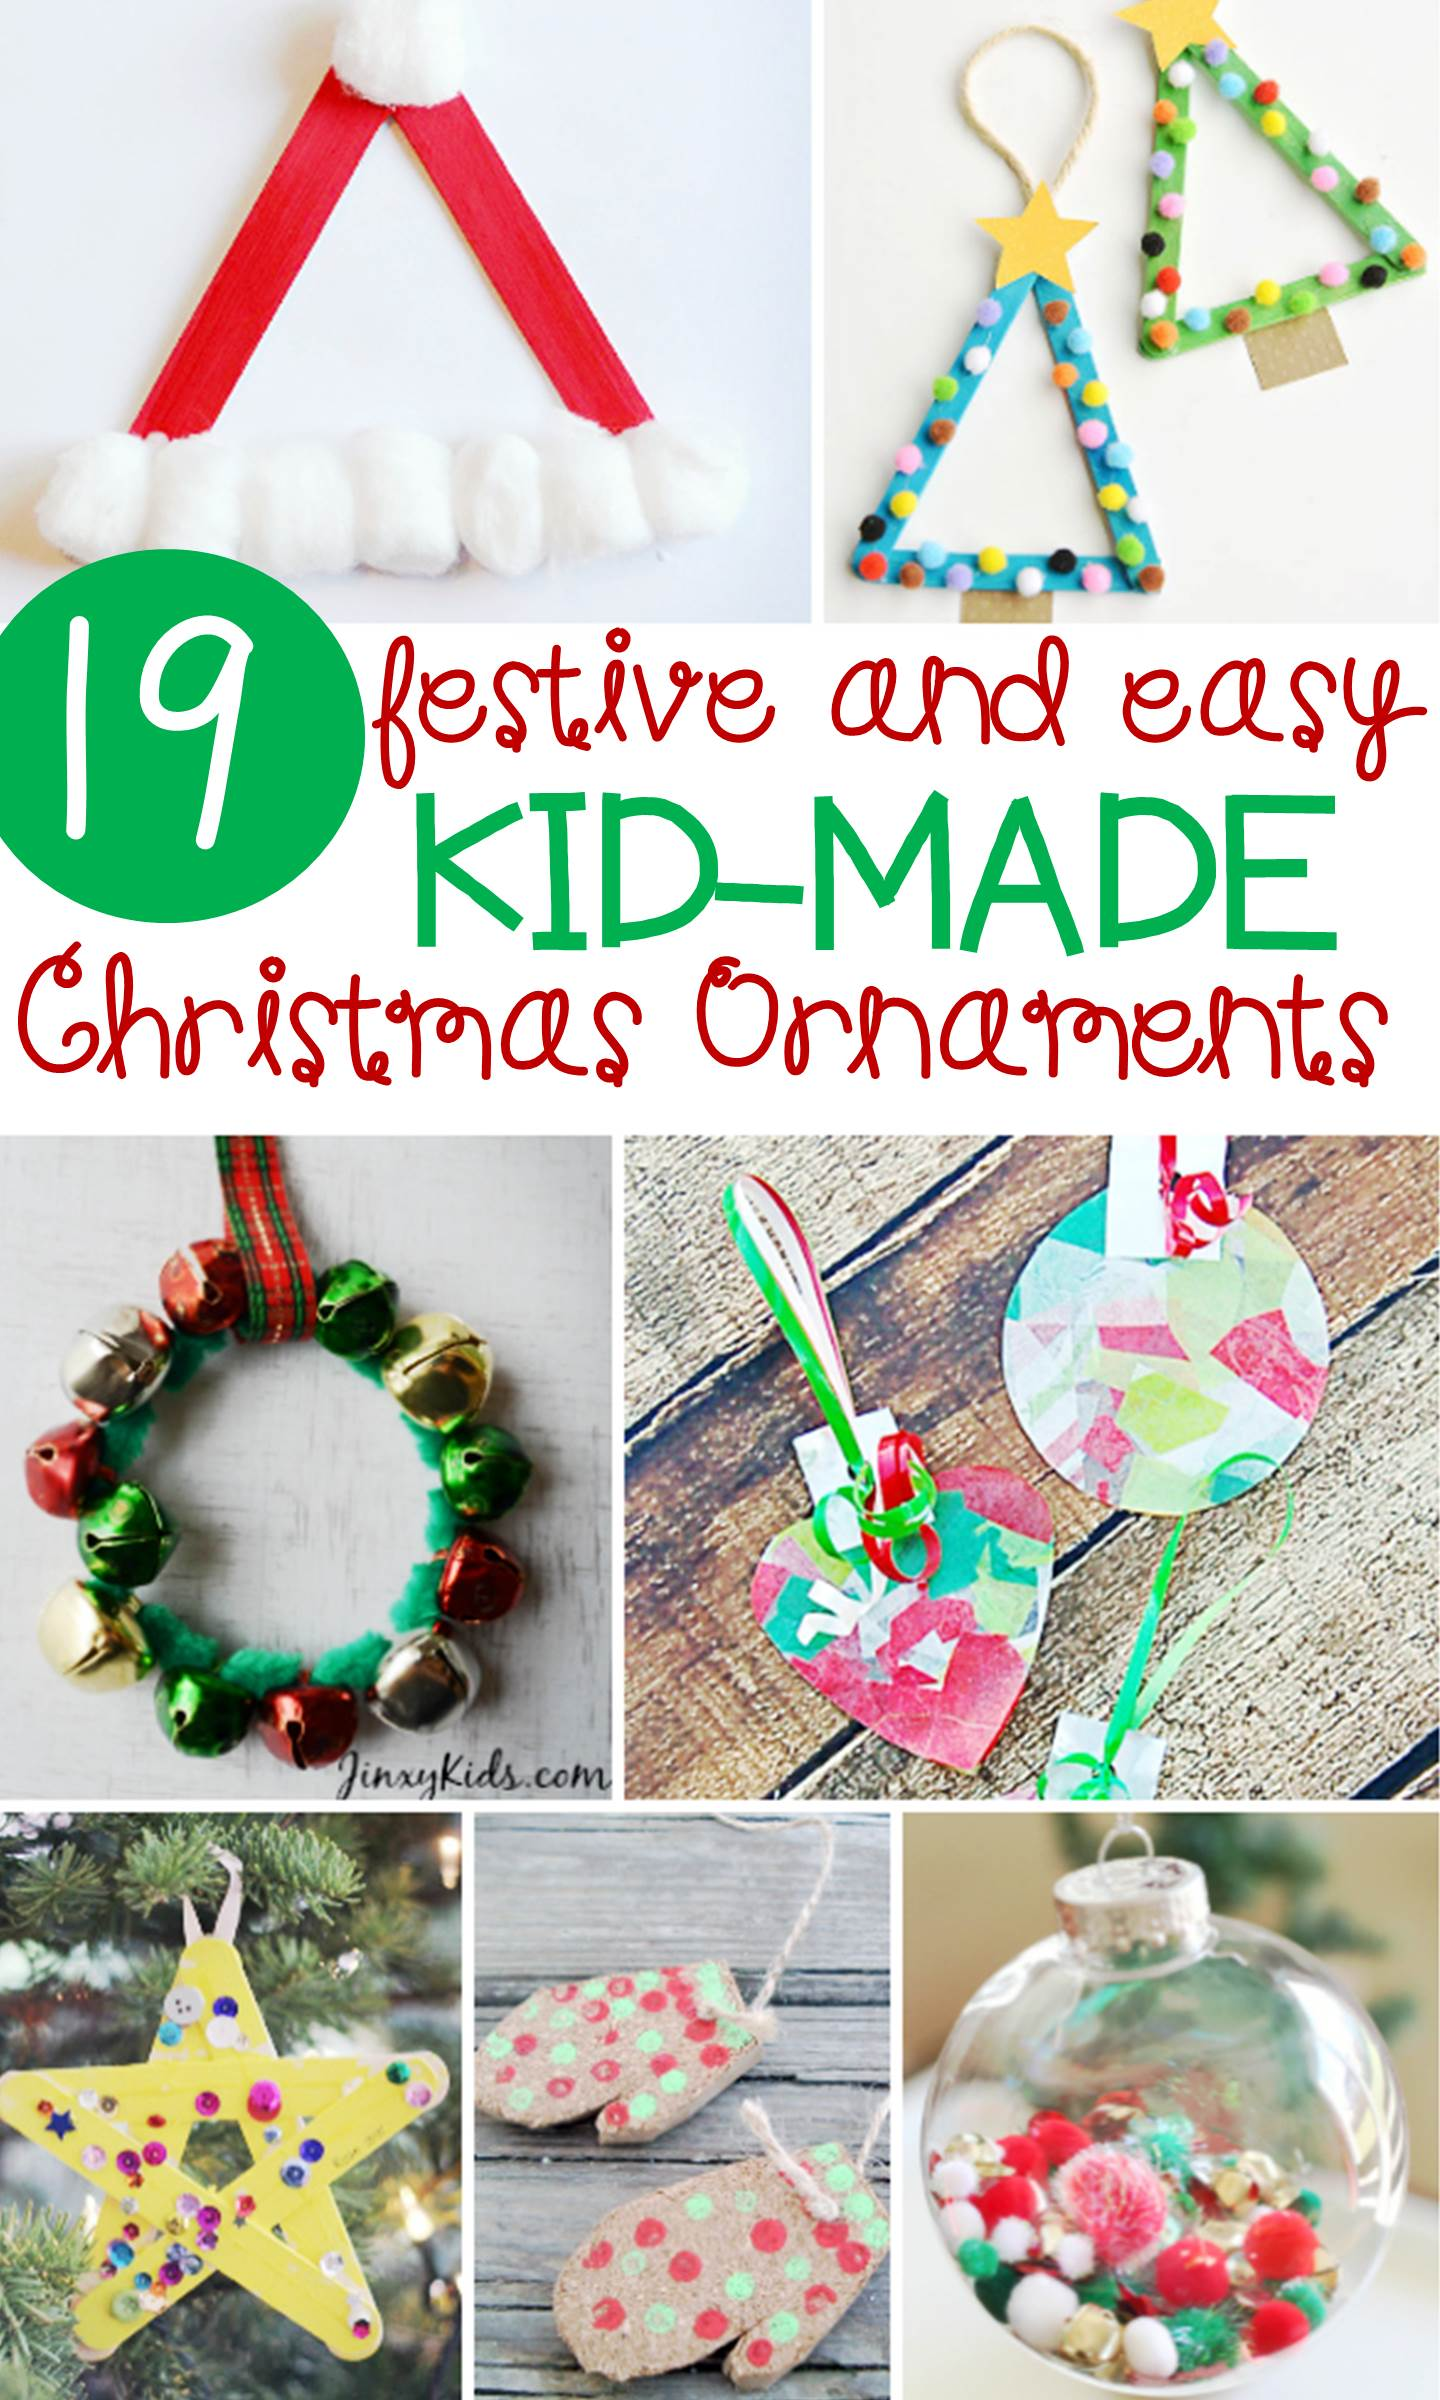 These 19 Festive And Easy Kidsu0027 Christmas Ornaments Are Sure To Give You  Some Ideas